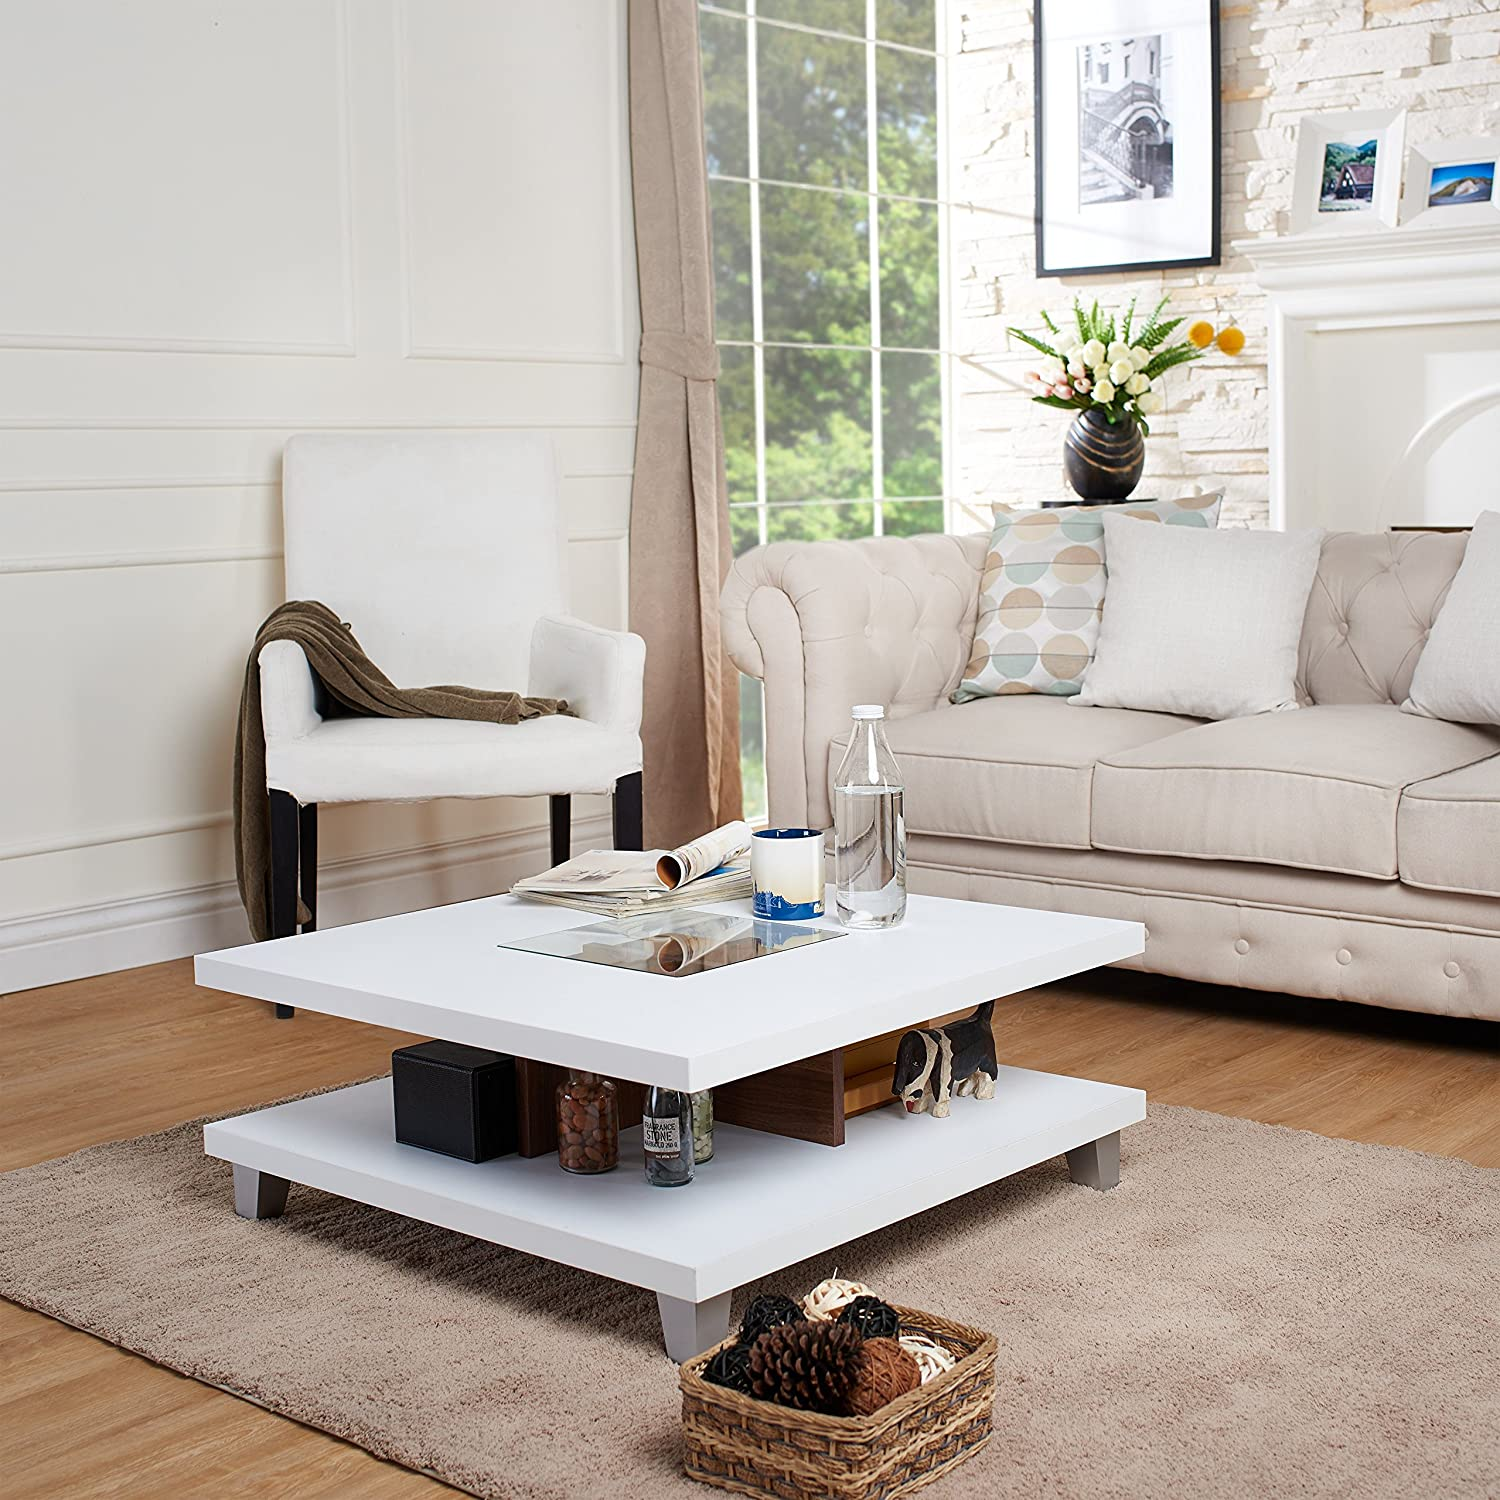 Amazoncom ioHOMES Lendon Square Coffee Table White Kitchen Dining